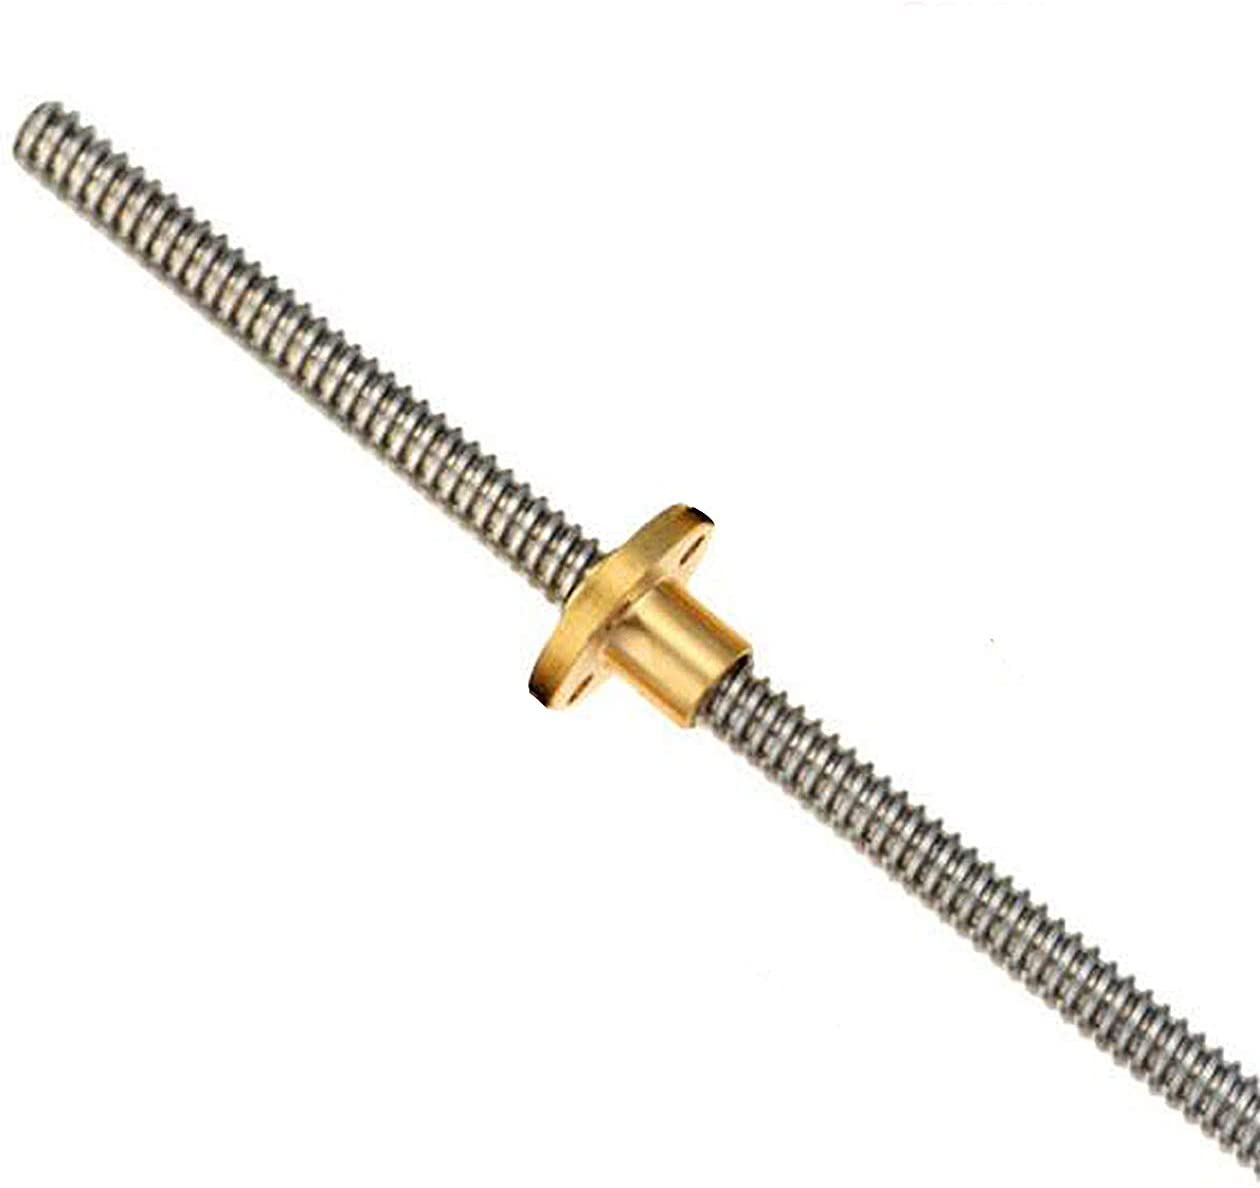 T8 Lead Screw ( 2mm Pitch , 4mm Lead ) Length 100mm with Copper Nut THSL-100-8D 3D Printer Part